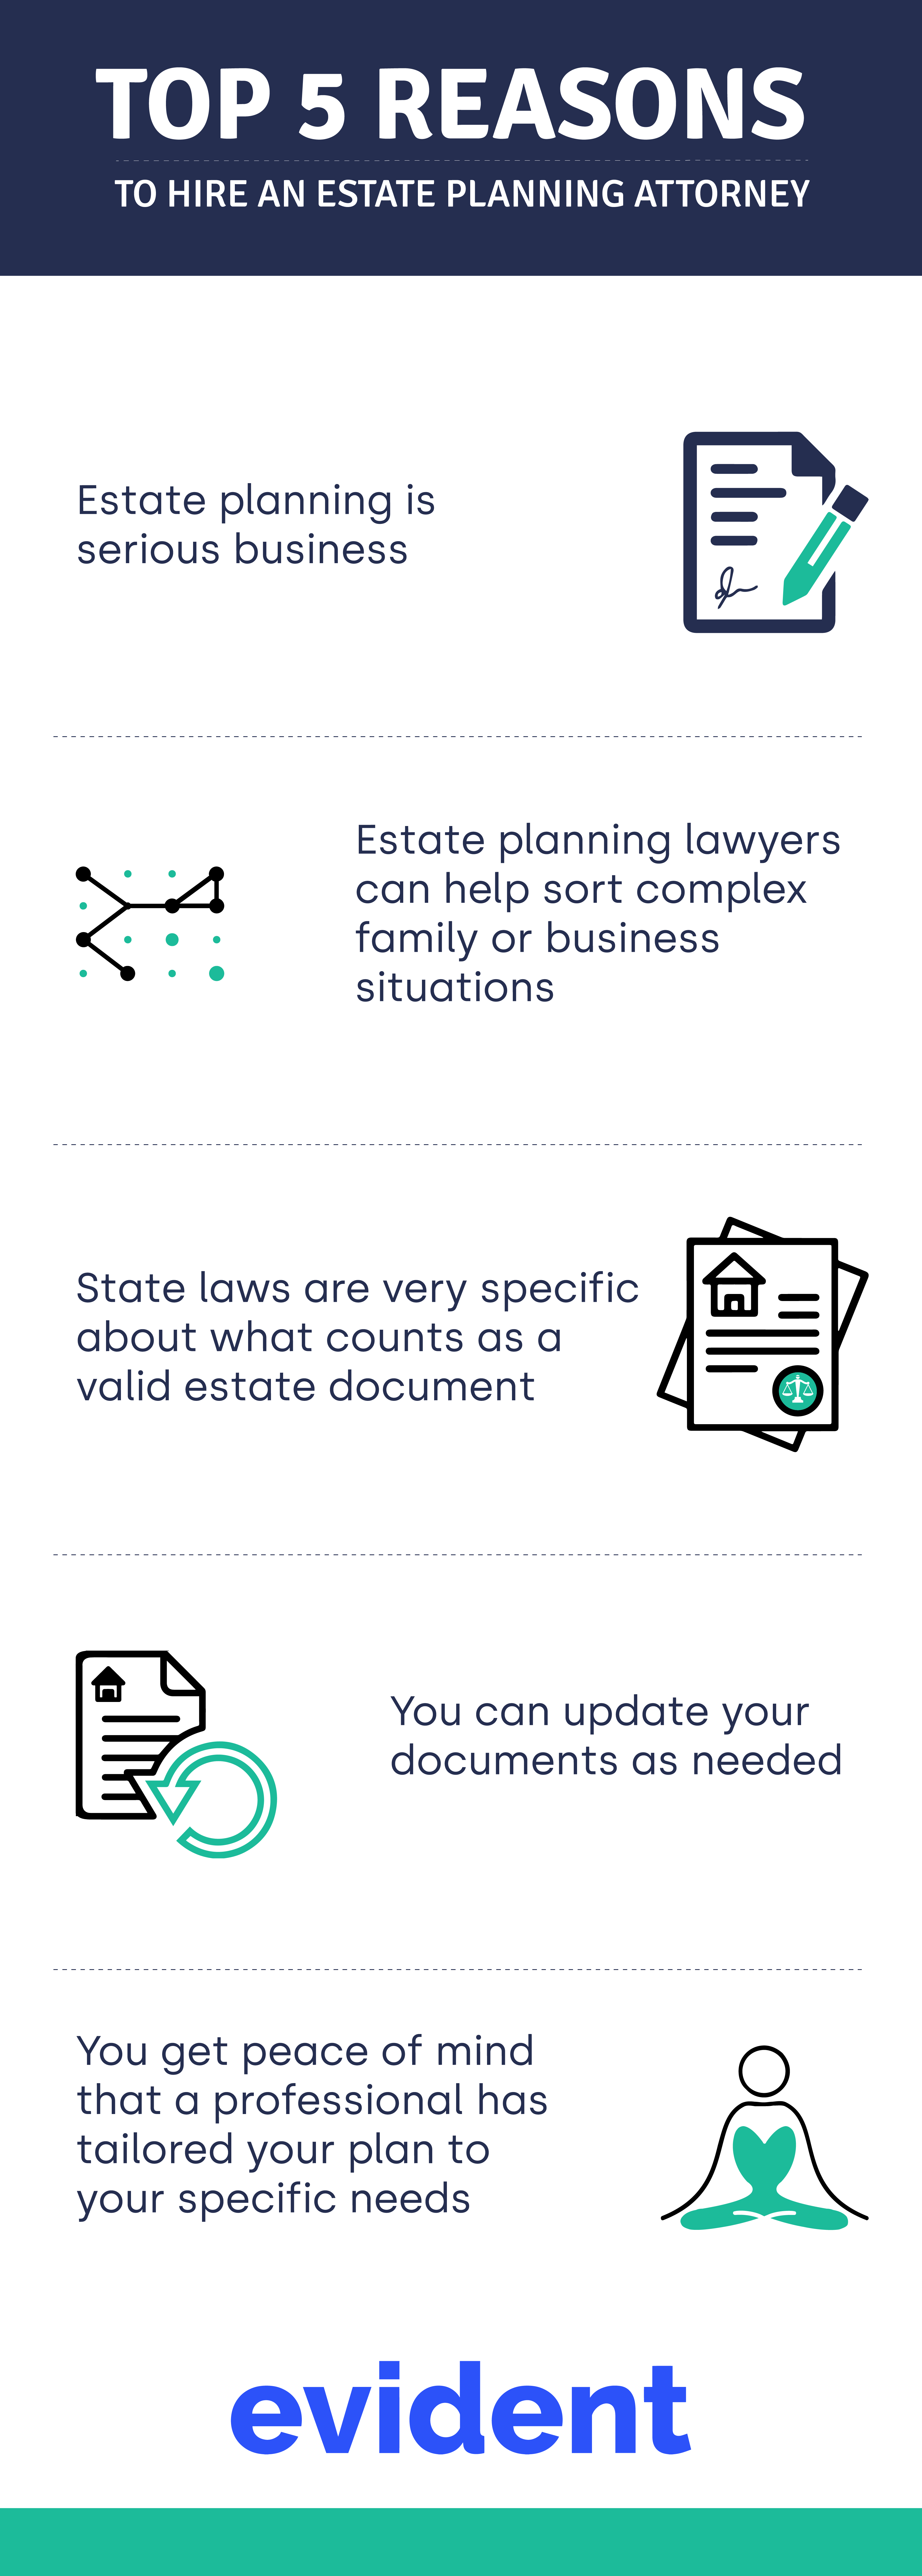 Checklist of reasons to hire estate lawyer